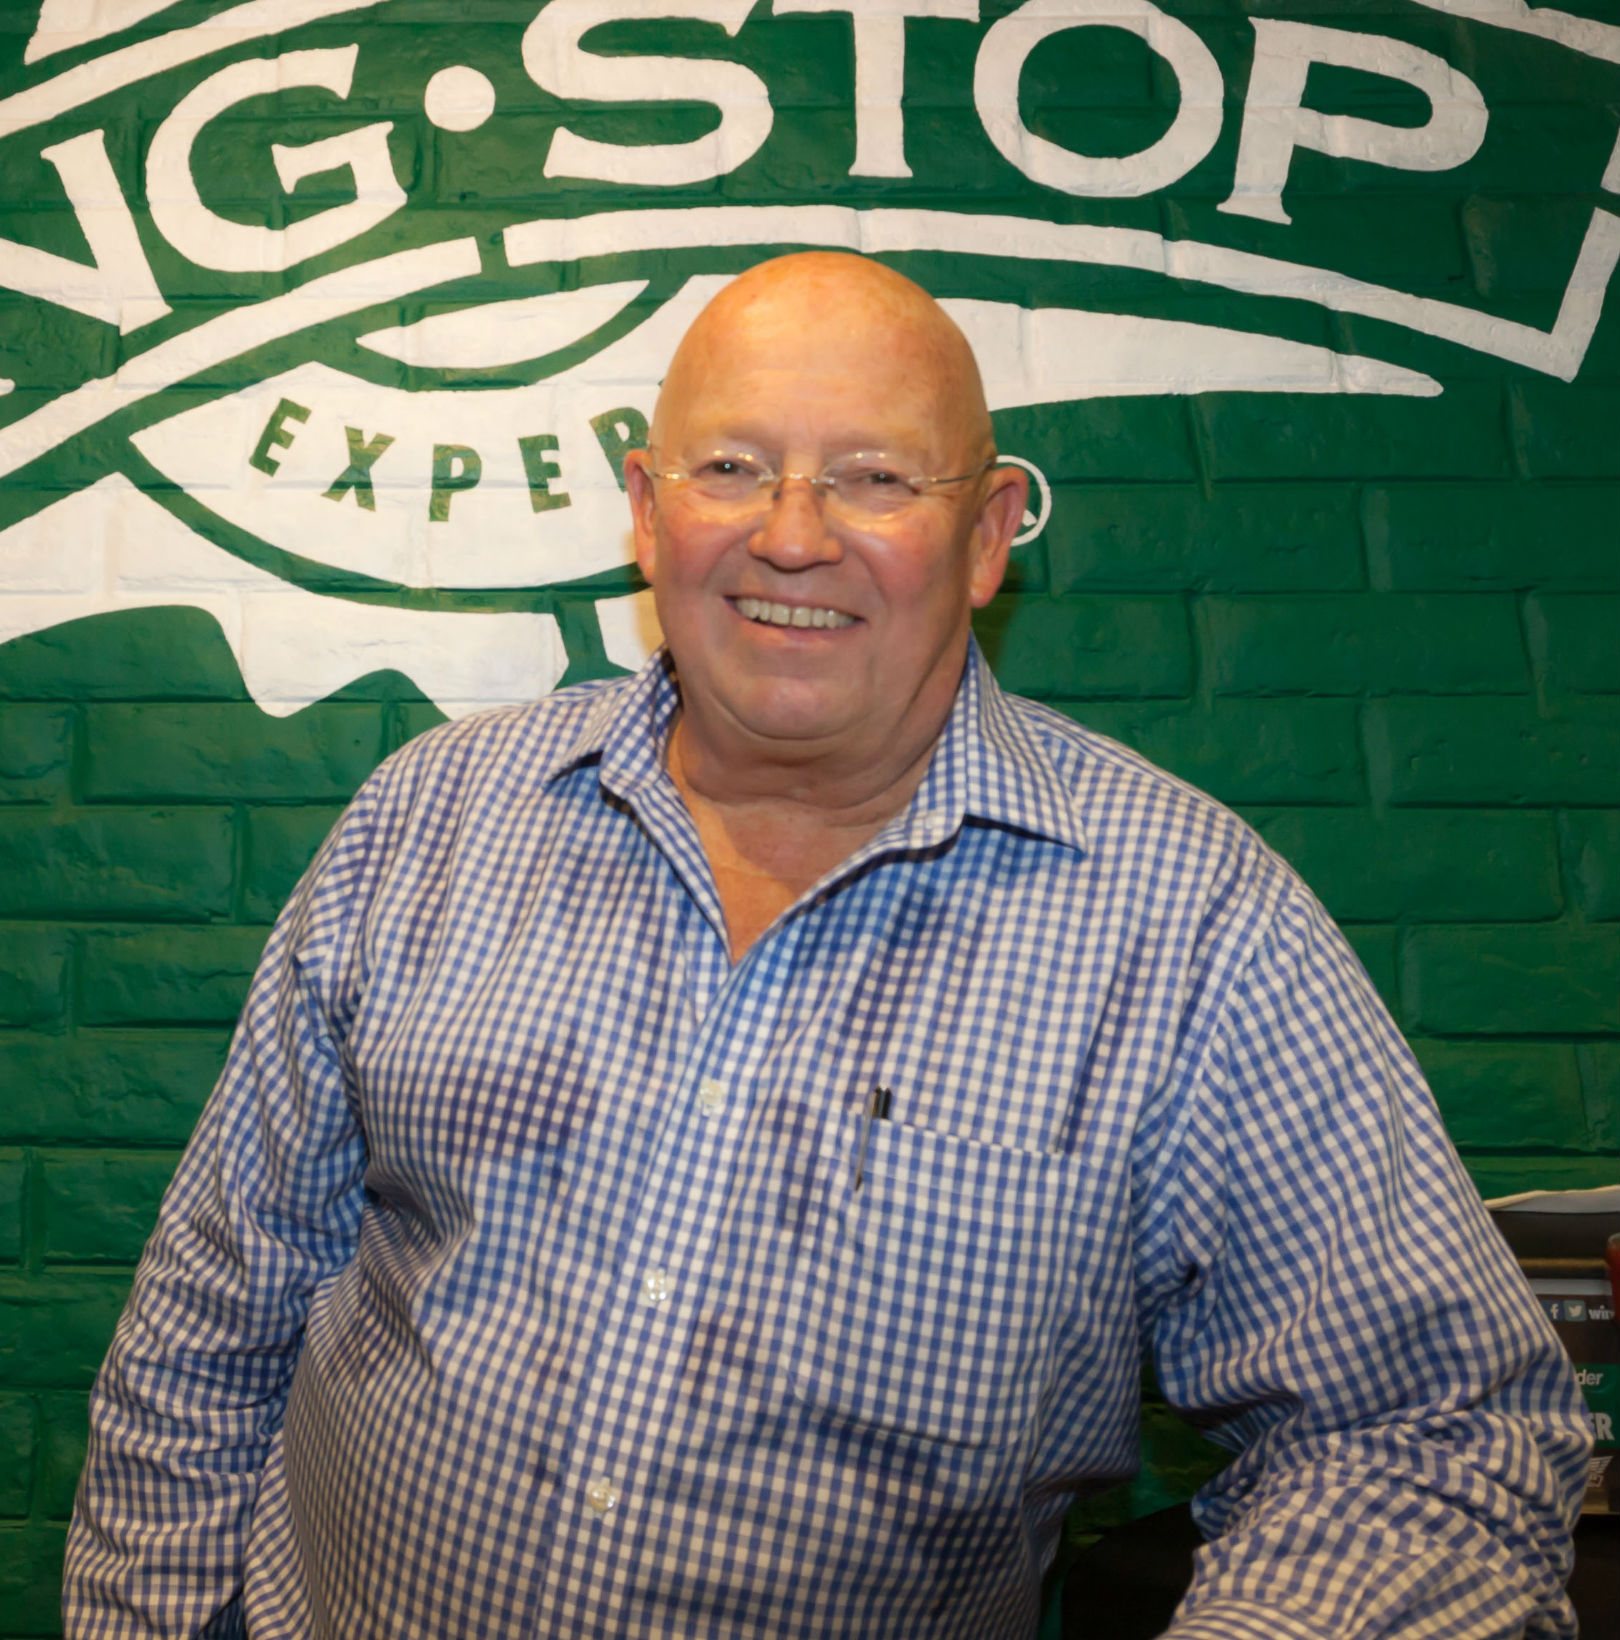 Five minutes with.. Ted Leovich, VP International Operations, Wingstop